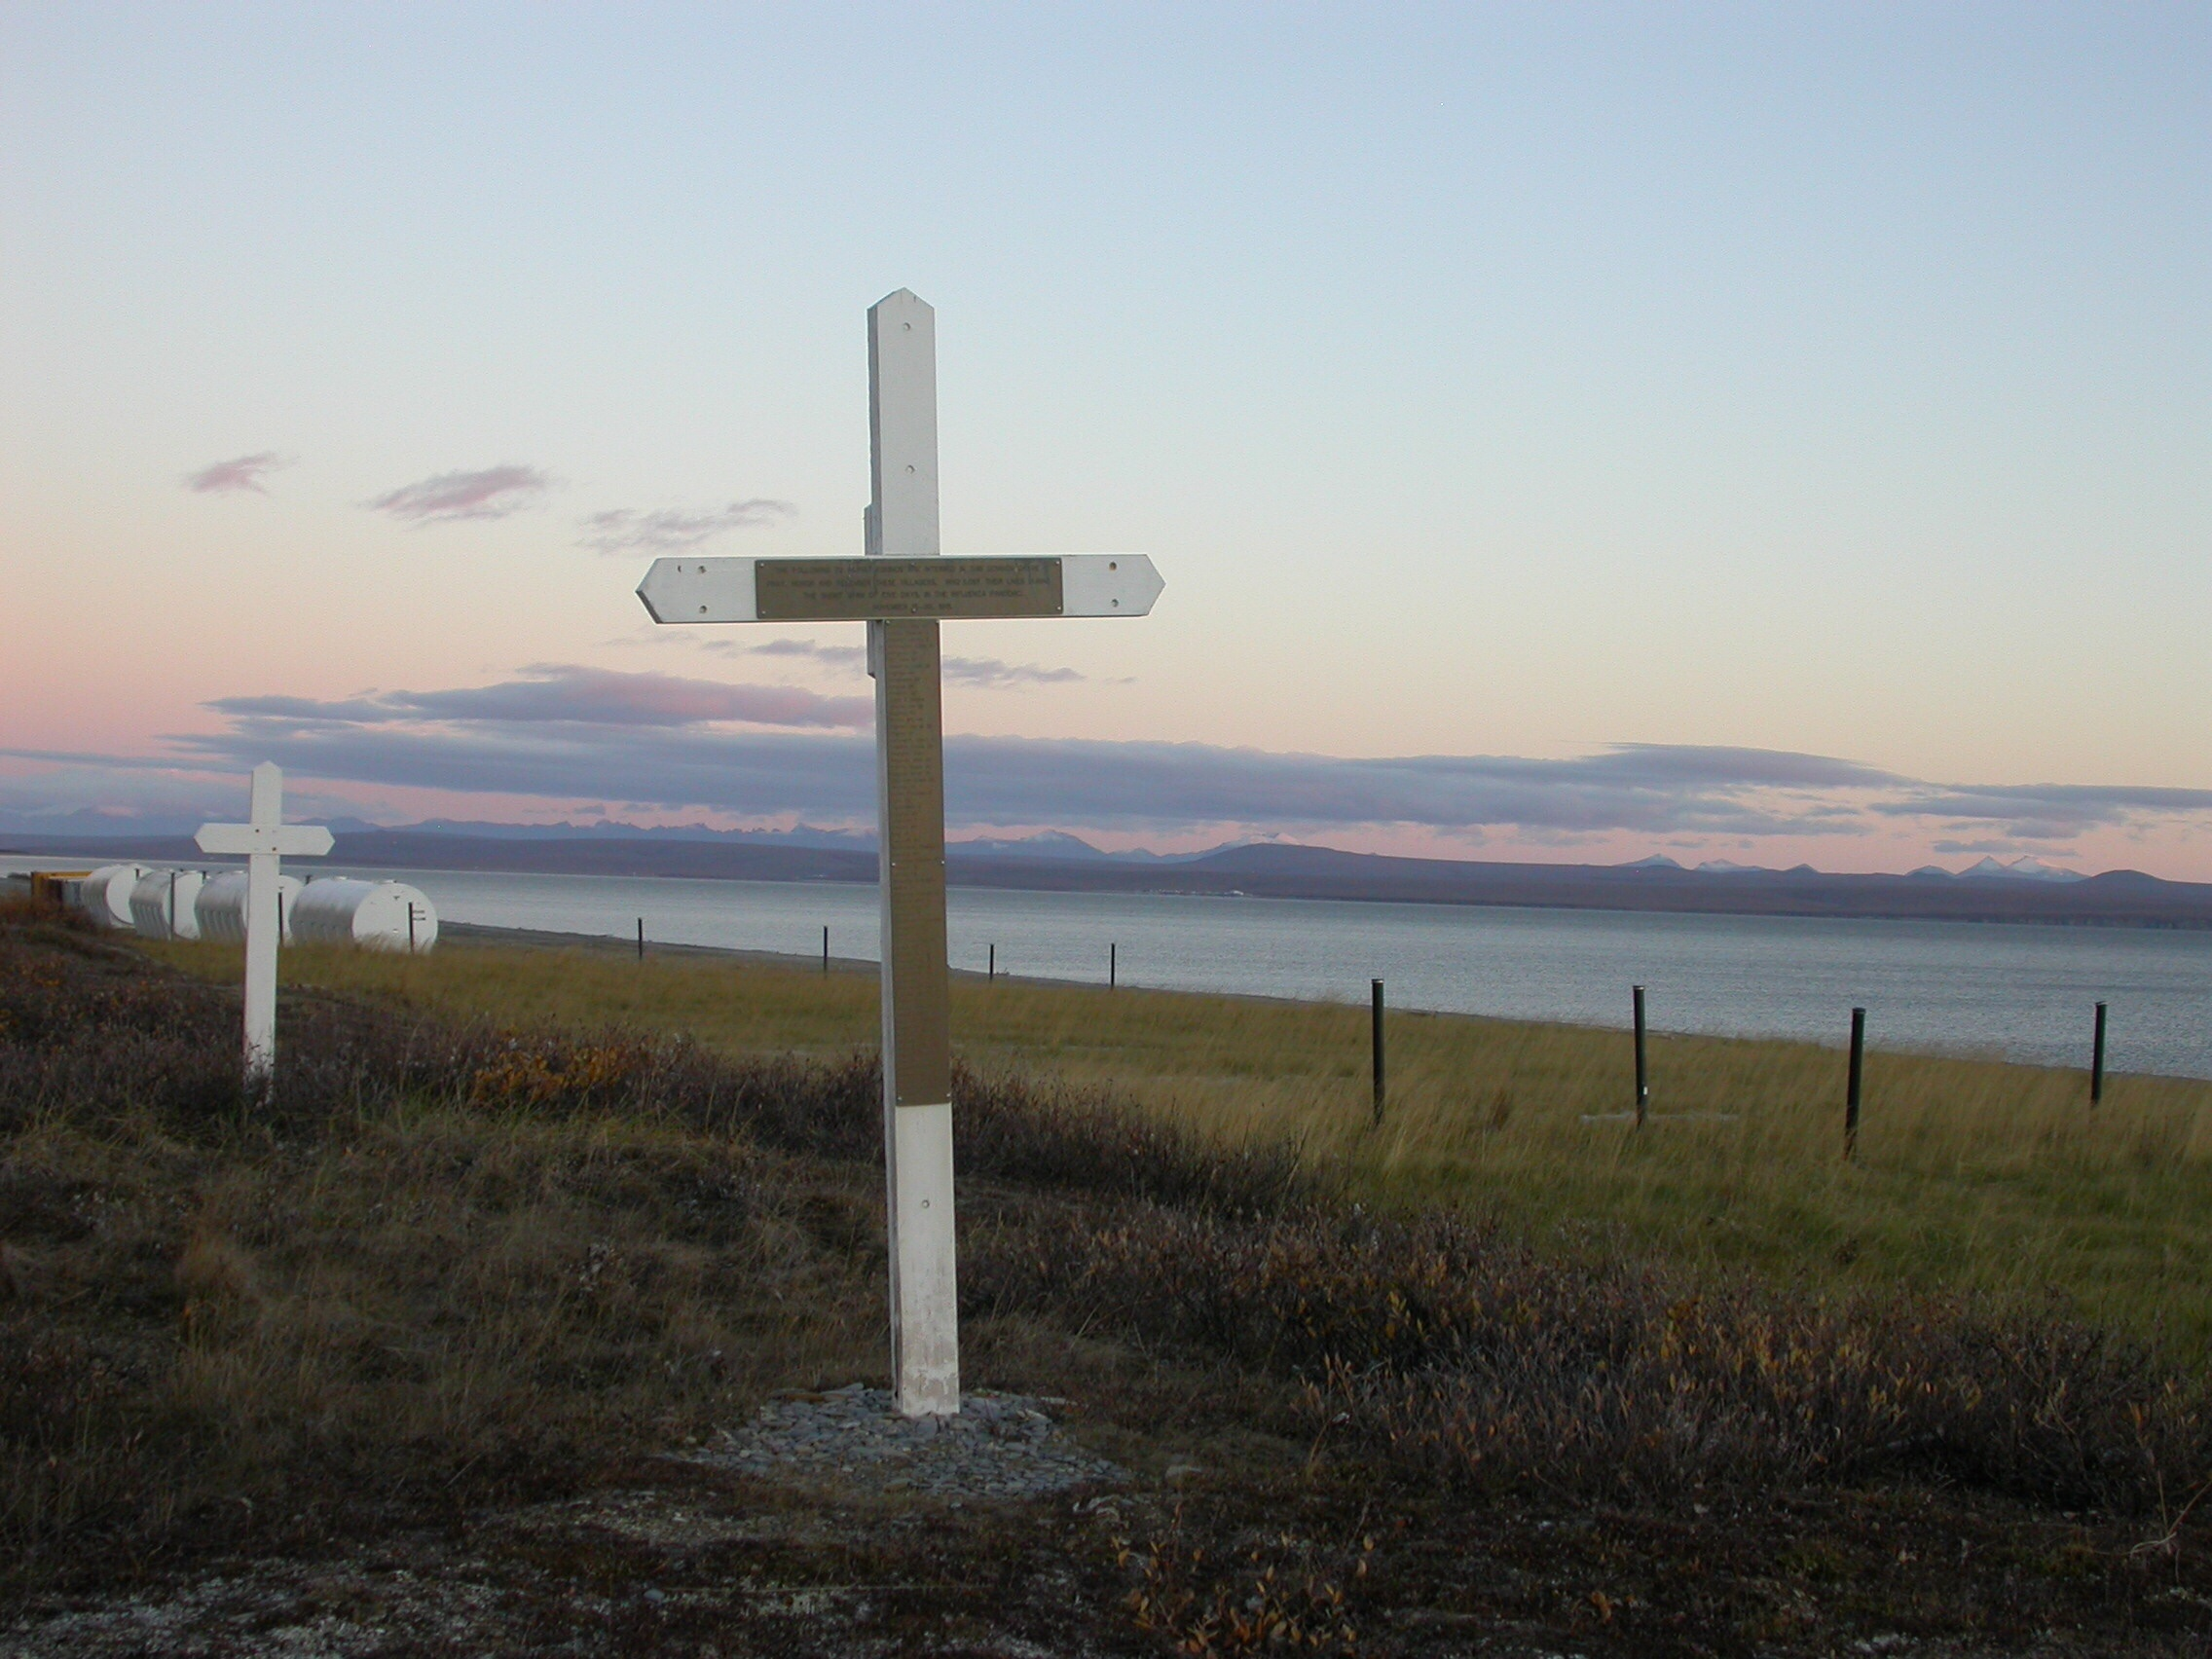 Brevig Mission, Alaska, where 72 people were buried following the Spanish flu outbreak of 1918.  Photo by Ned Rozell.   From:  http://www.gi.alaska.edu/alaska-science-forum/villager-s-remains-lead-1918-flu-breakthrough